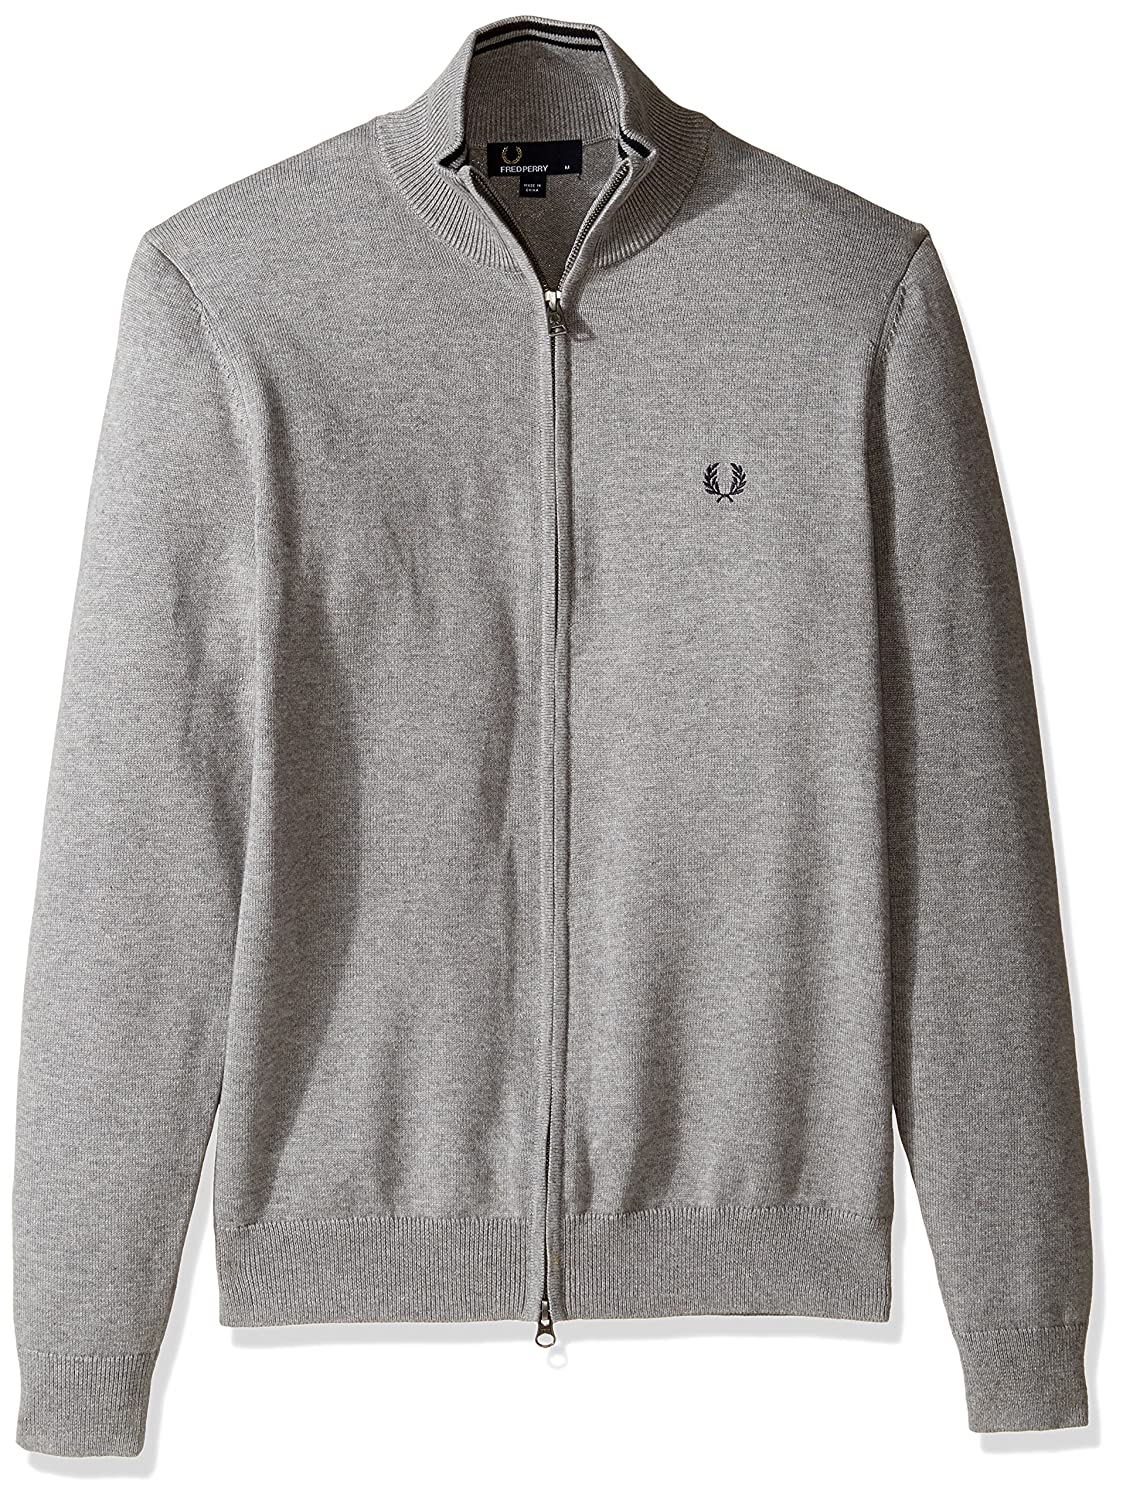 Fred Perry SWEATER メンズ B01MY2Q5GK Large|Steel Marl Steel Marl Large